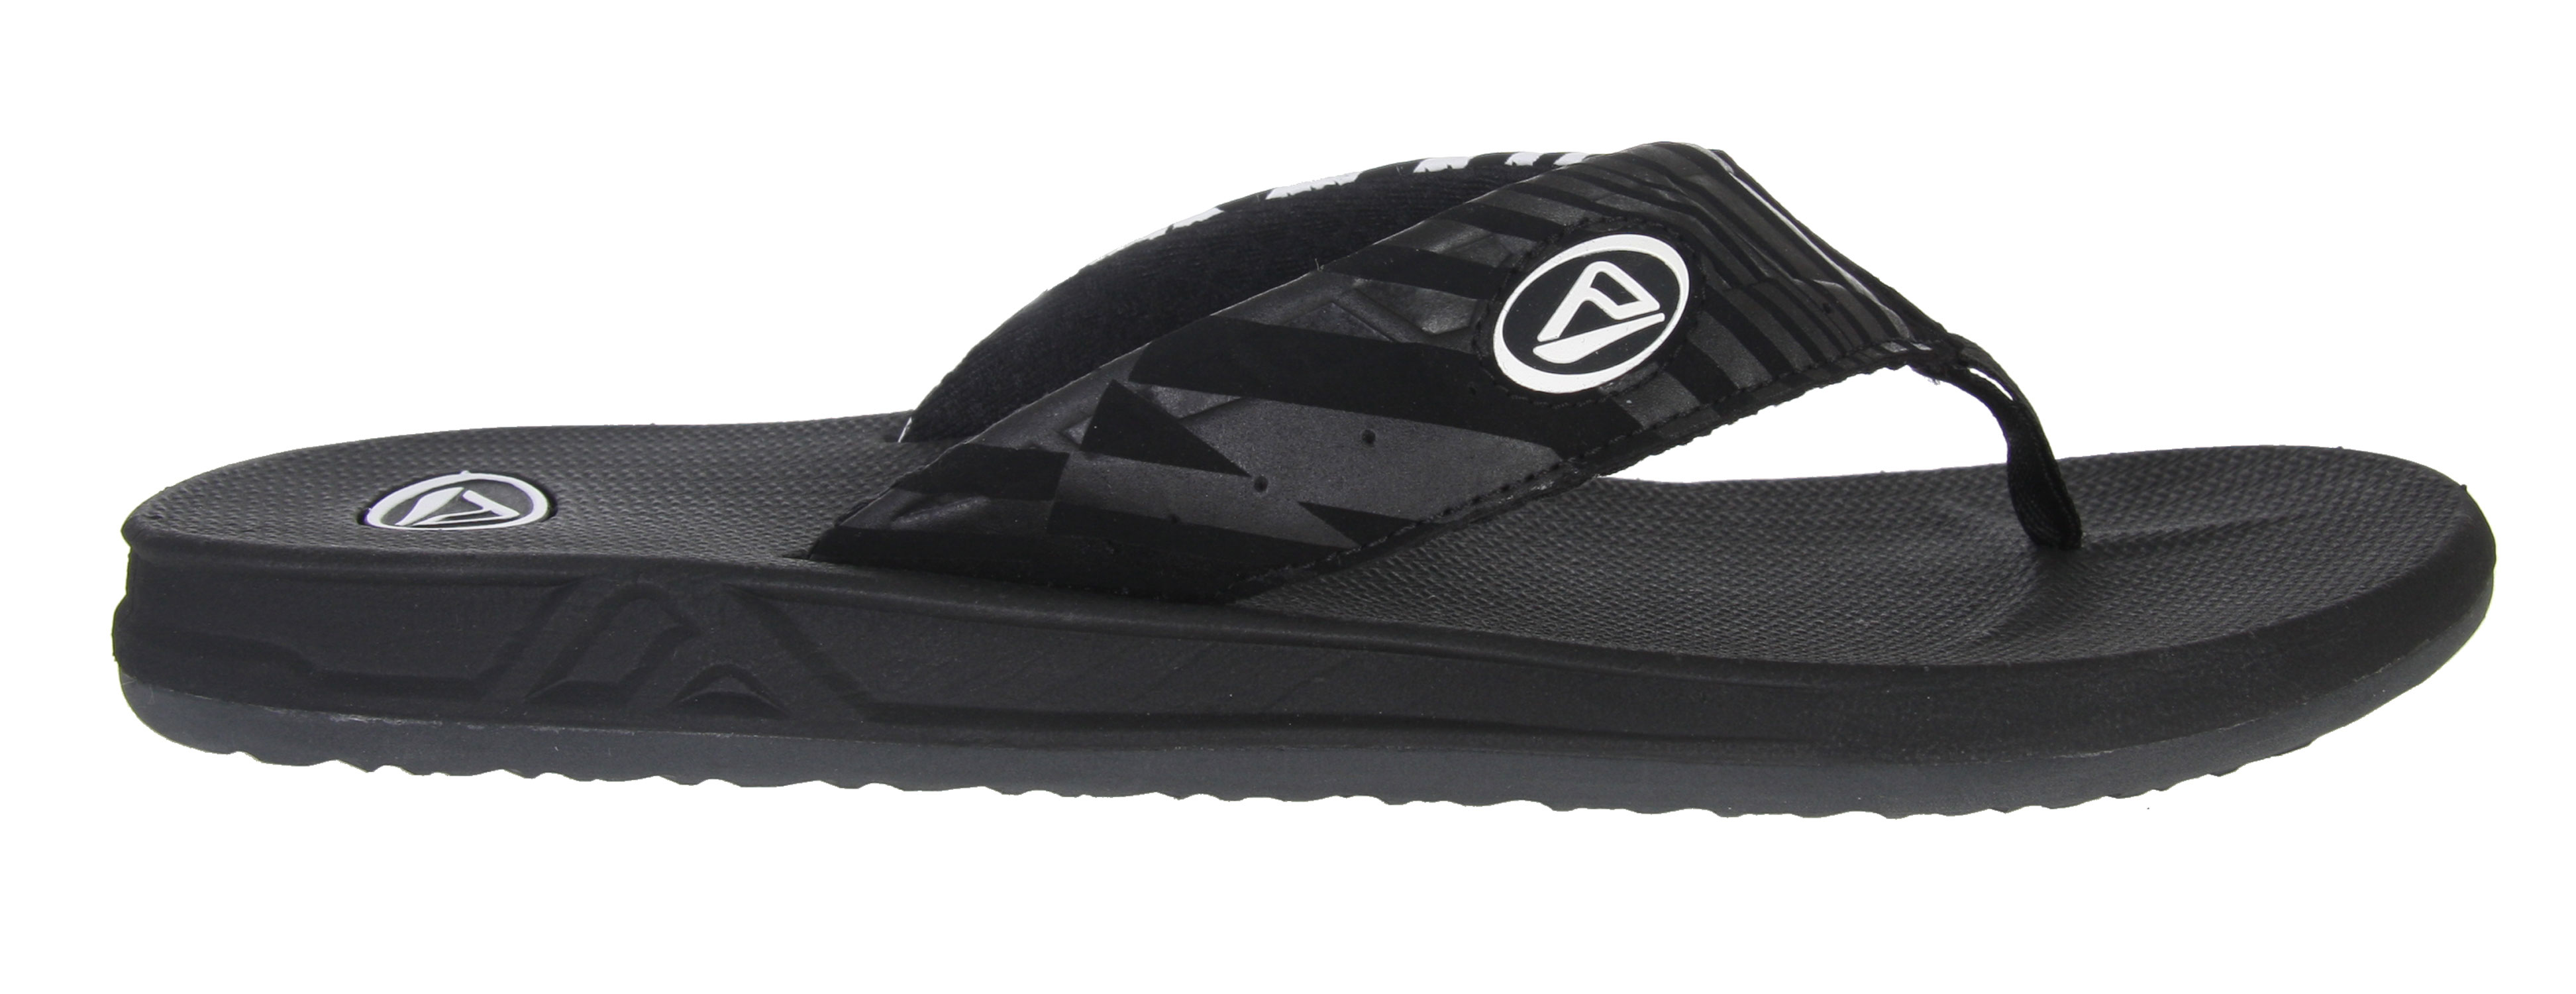 Surf Be prepared this season with the Reef Phantom Sandals. Featuring a water friendly upper, rock these sandals to the pool and have some fun by the water. With a molded footbed and great arch support, feel comfortable all summer long. Its rubber soles will keep you from slipping and falling. So, get in the mood for some summer fun and get in these Reef Phantom Sandals.Key Features of the Reef Phantom Sandals: Soft, comfortable, water friendly synthetic nubuck upper Air mesh lining Contoured compression molded EVA footbed with anatomically correct arch support Durable and grippy high density EVA outsole - $20.95